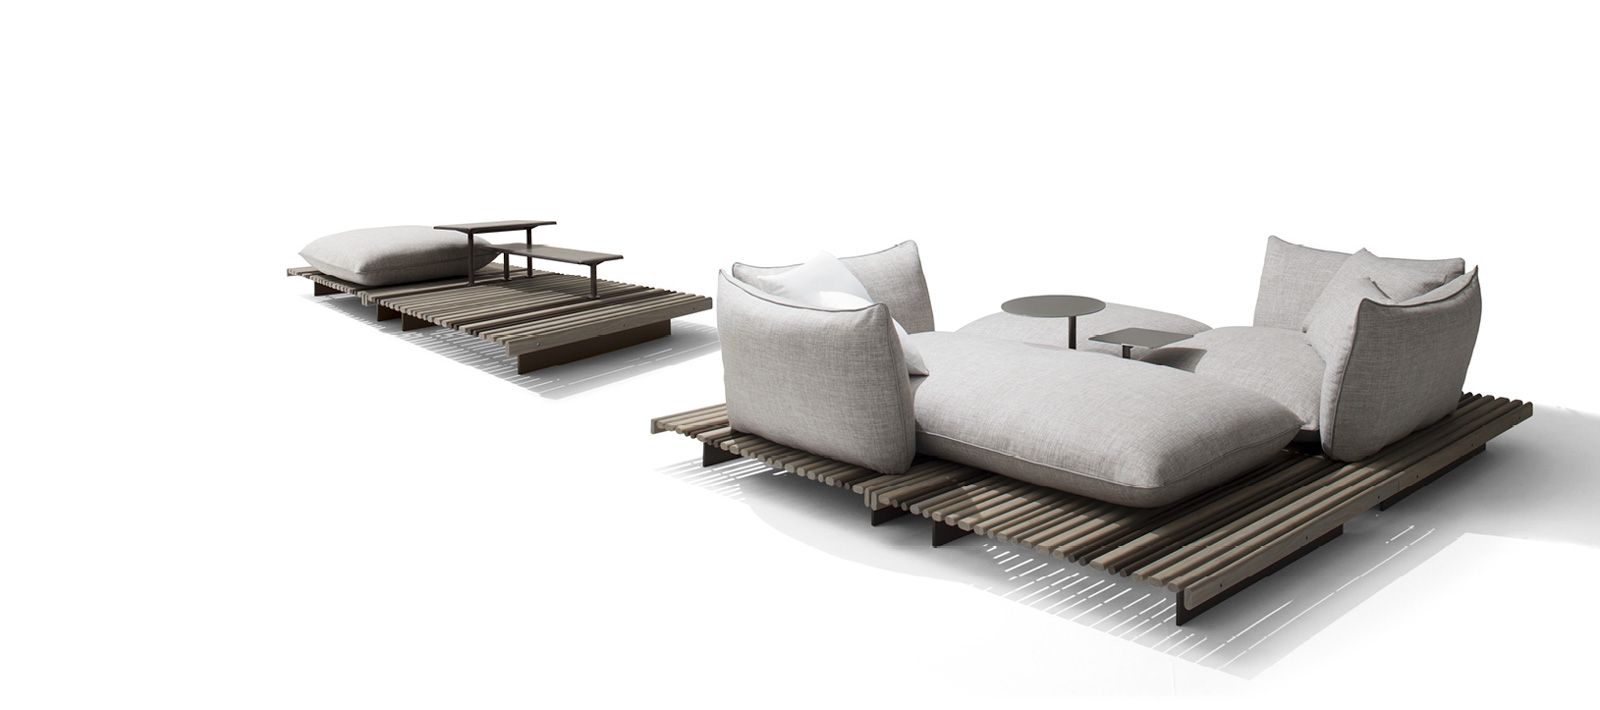 Outdoor Loungemöbel Test Giorgetti Apsara Seating Collection For Outdoor Koln 2017